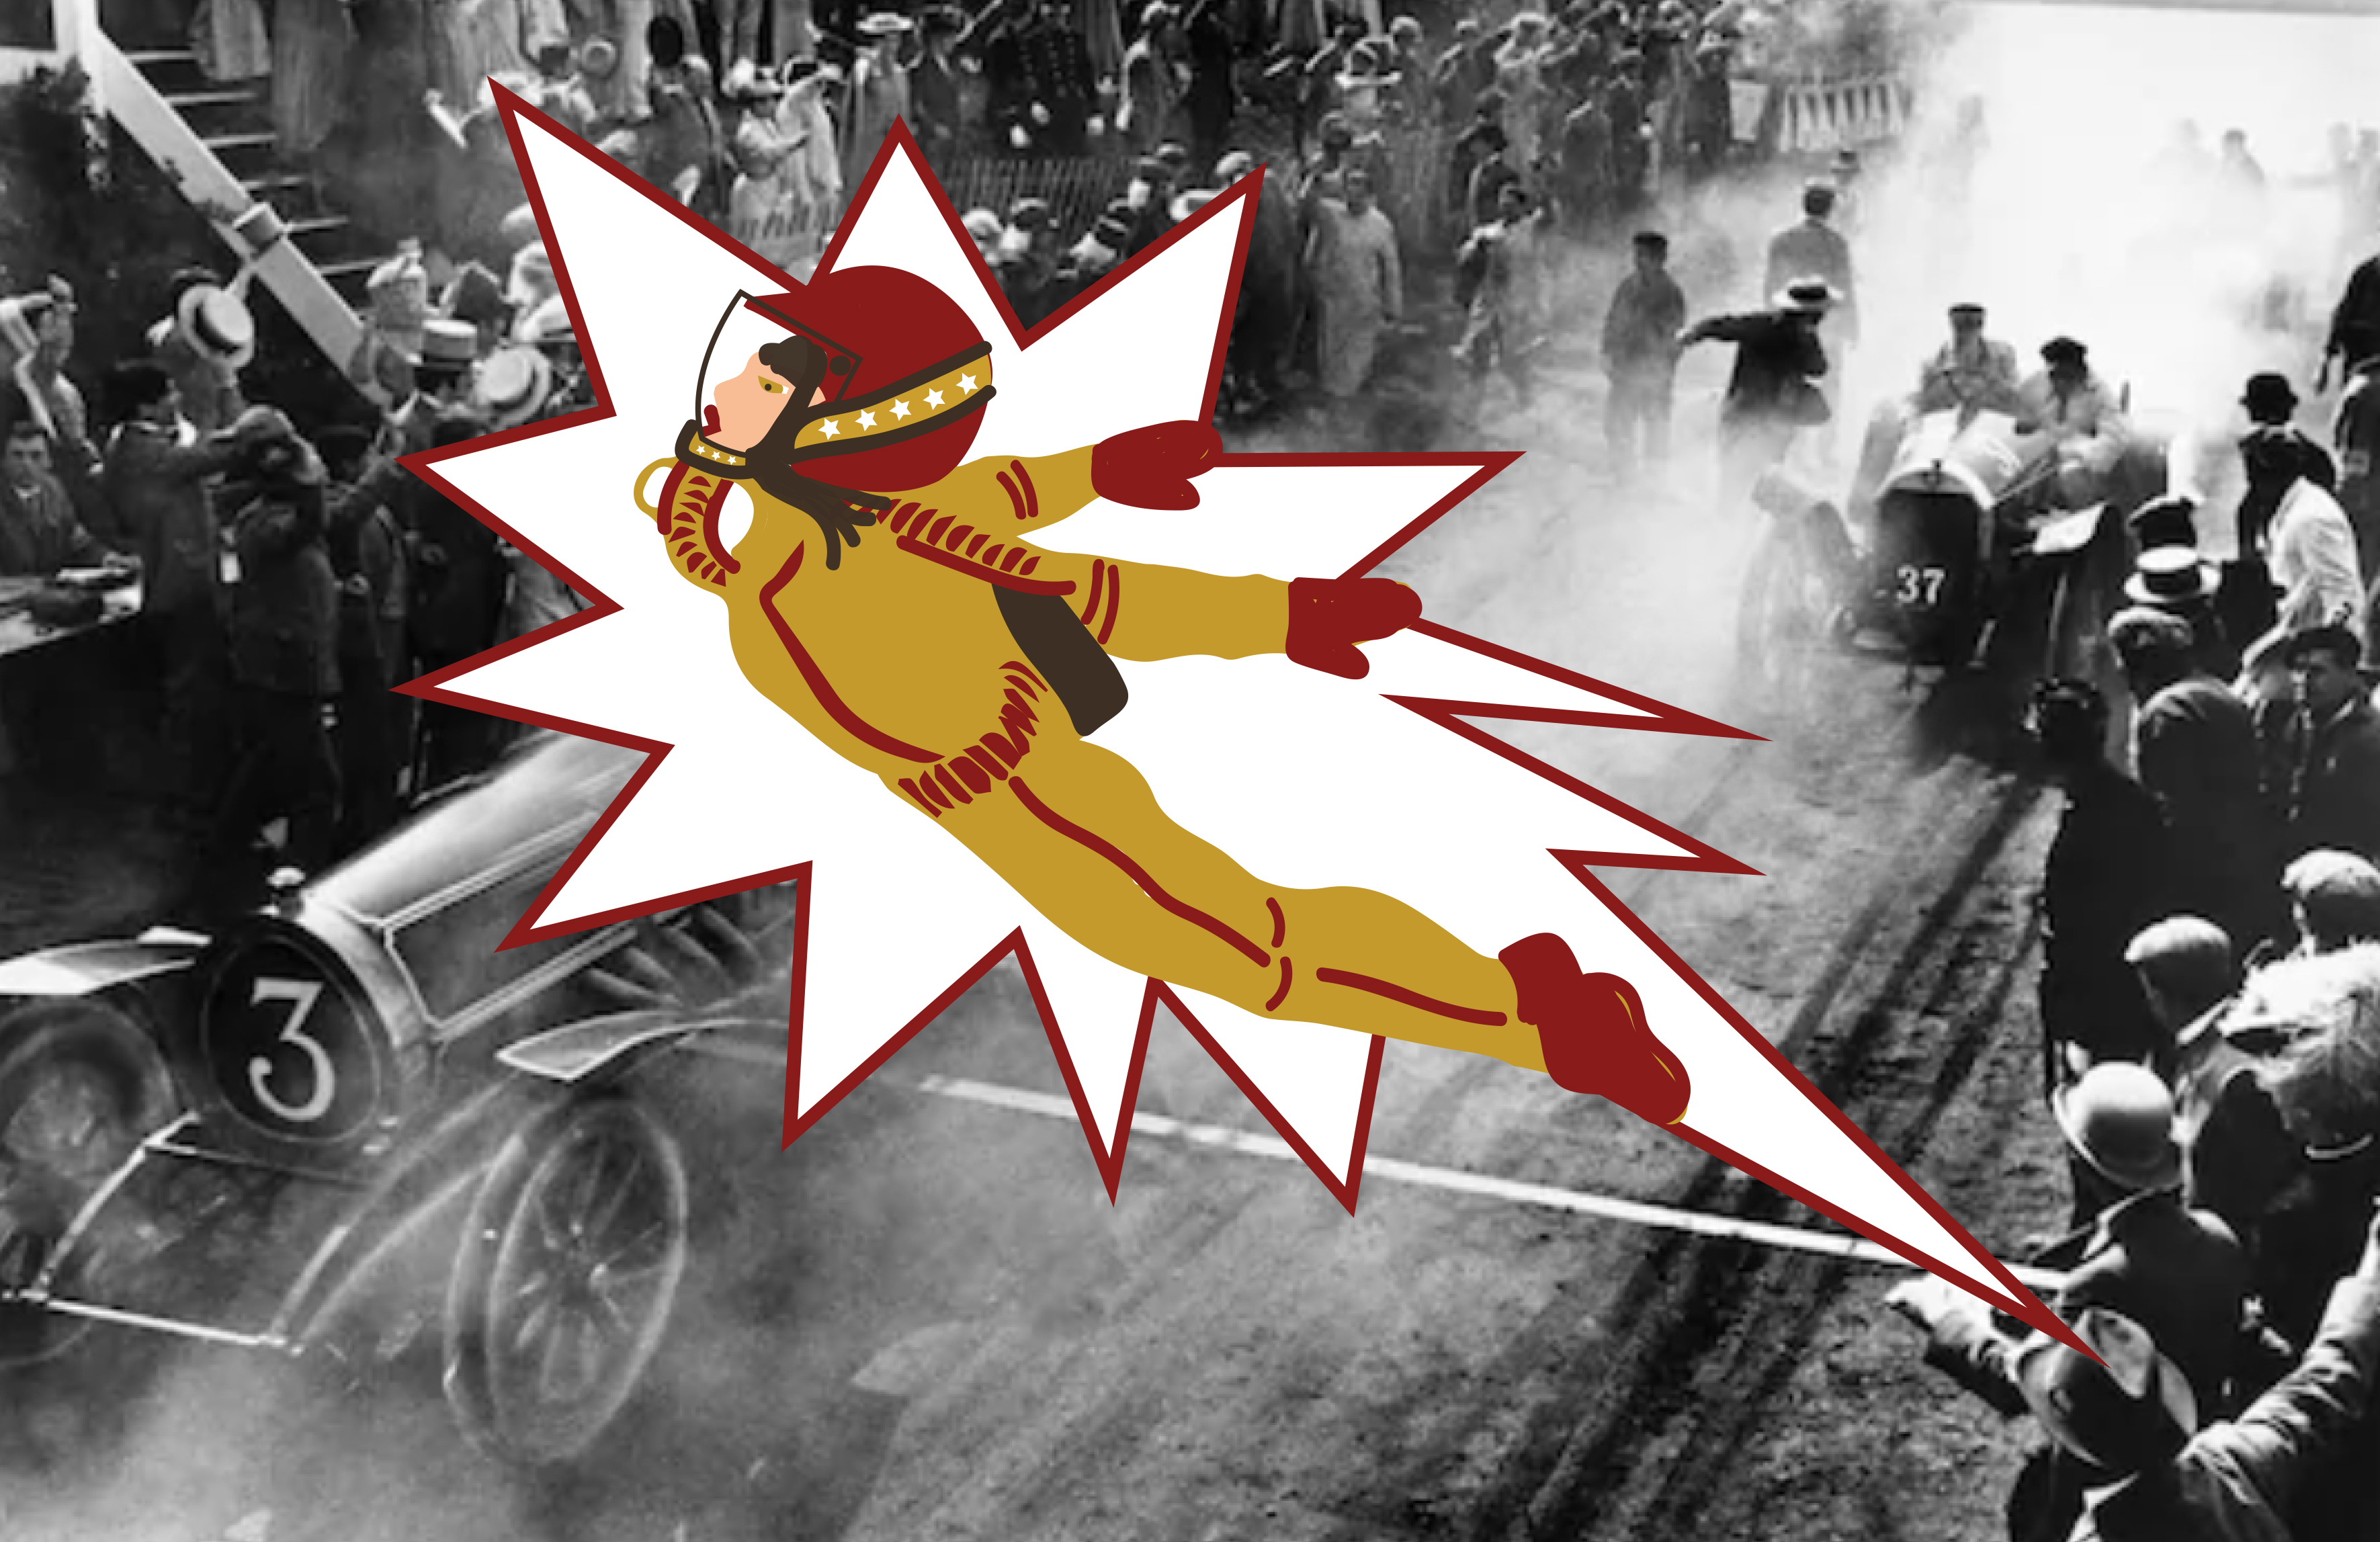 A stuntwoman wearing a suit and helmet inside an explosive illustration. She is flying through the air. Behind her is an old black-and-white photo of people gathering around racecars on a road.